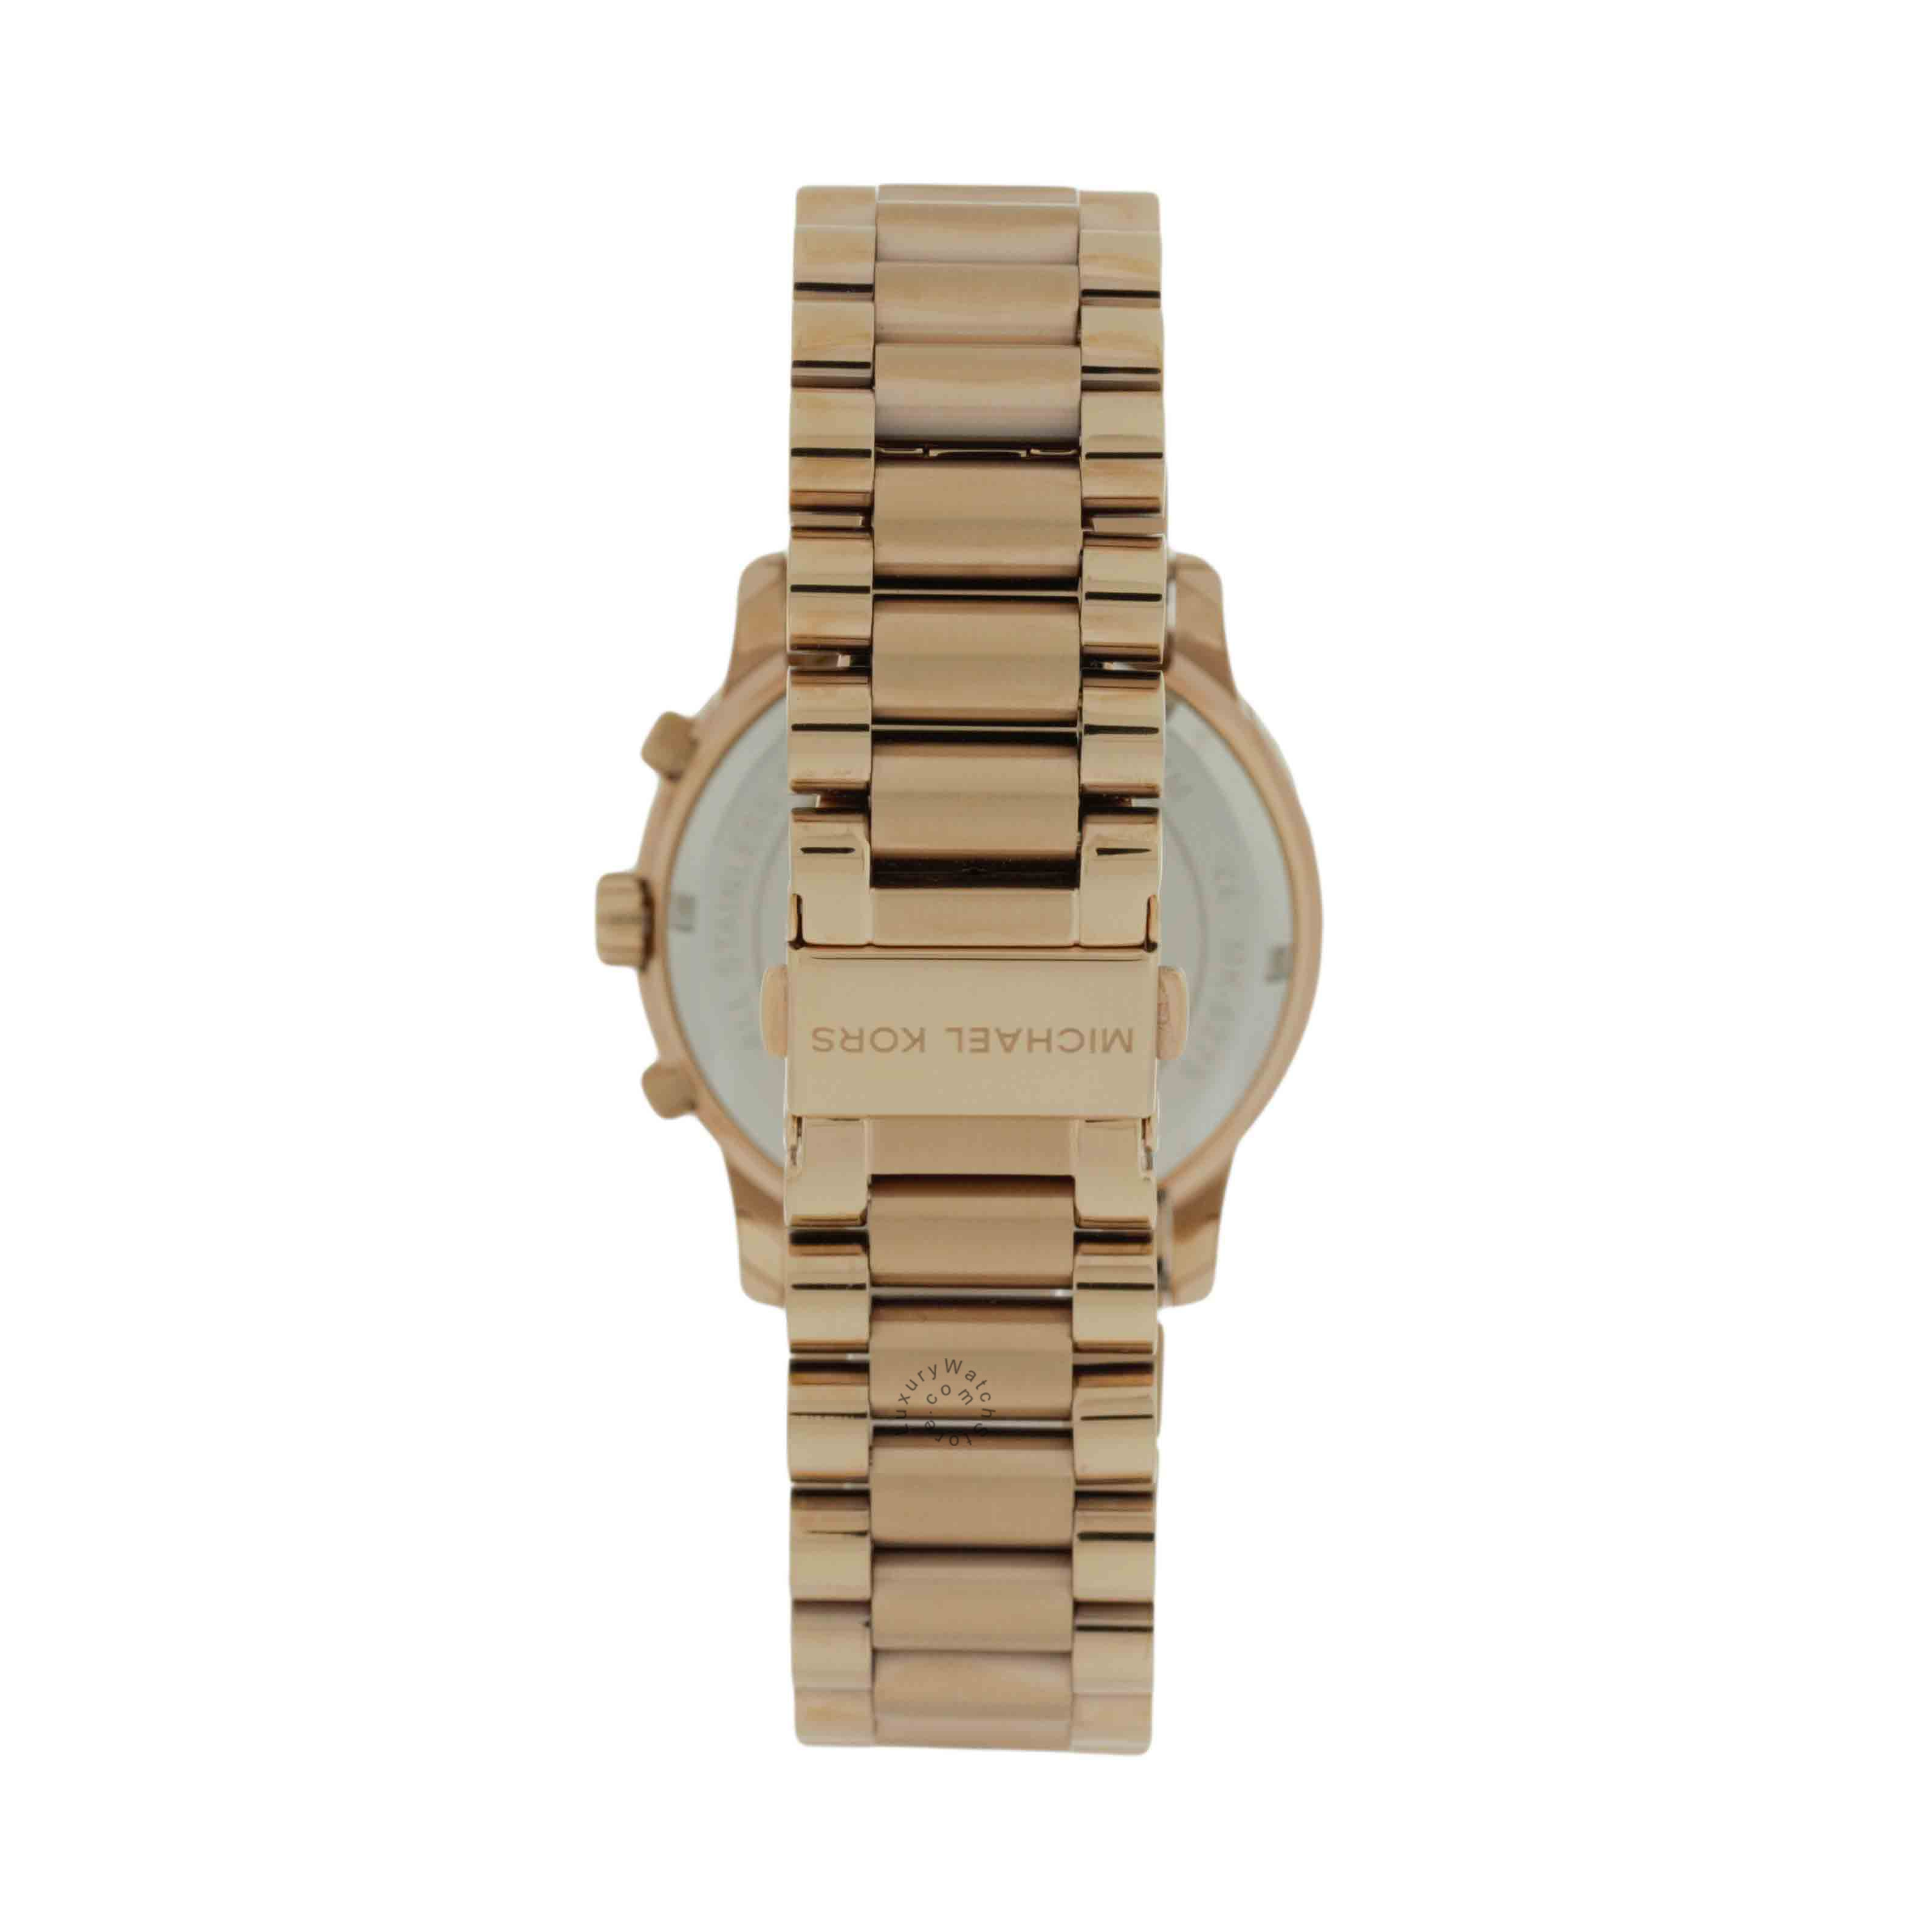 Michael Kors Cooper MK6275 Rose Gold-Tone Chronograph Women's Watch